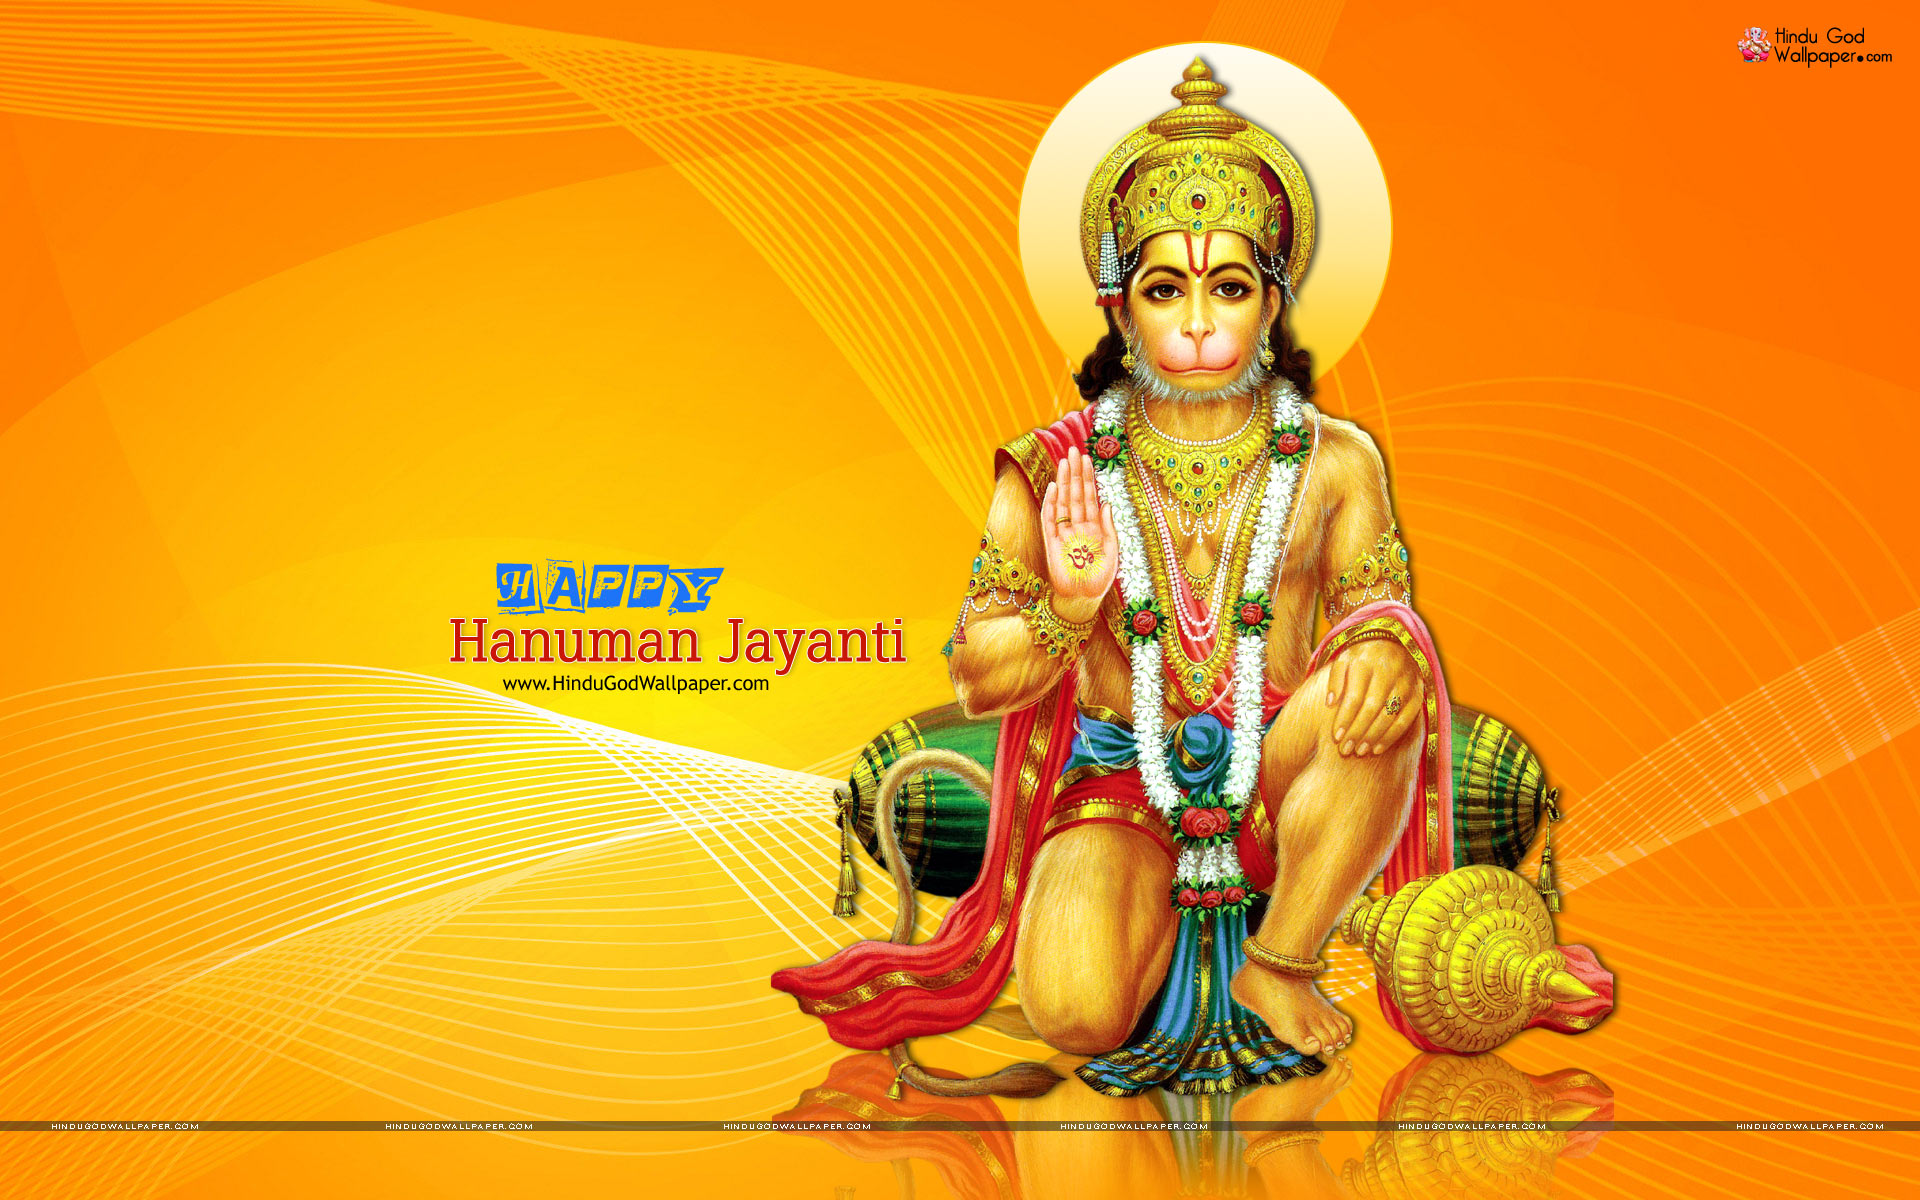 Cute Live Wallpapers For Android Apk Download Hanuman Ji Wallpaper Full Size Hd Gallery